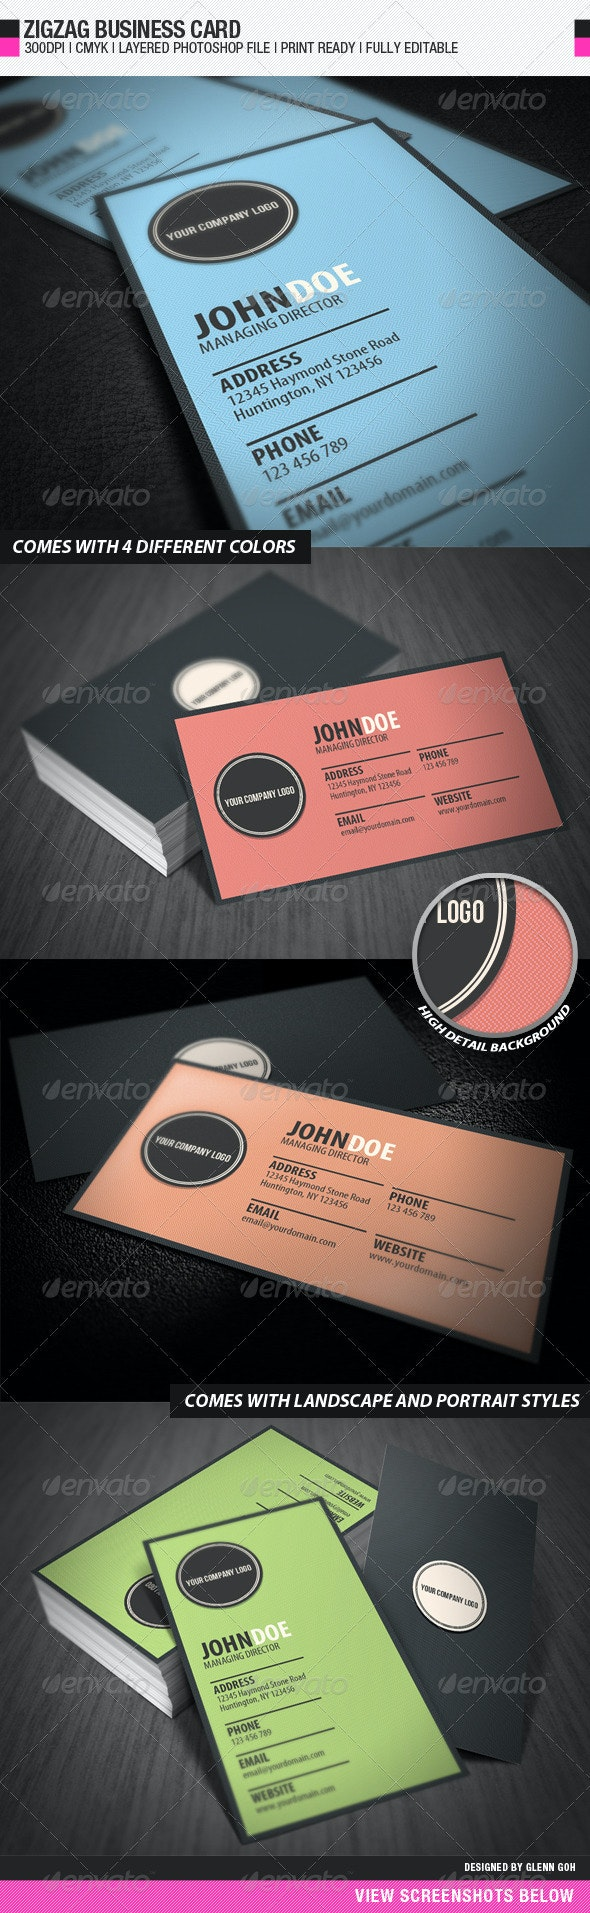 Zigzag Business Card - Corporate Business Cards